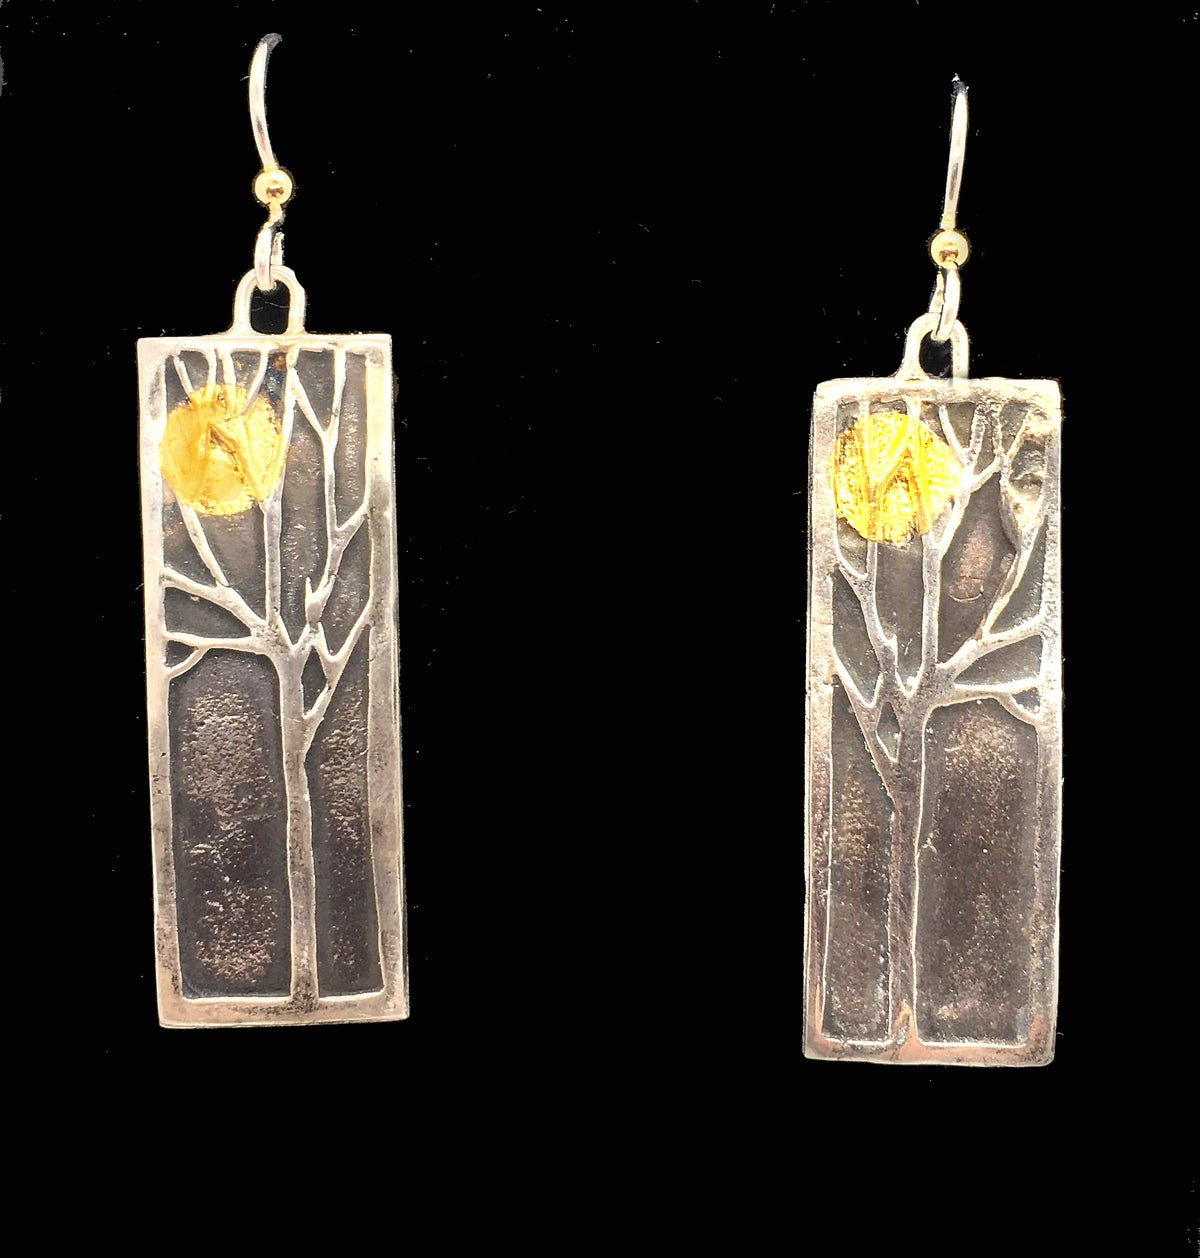 Image of Tree earrings with 24K moons (or suns, you decide)